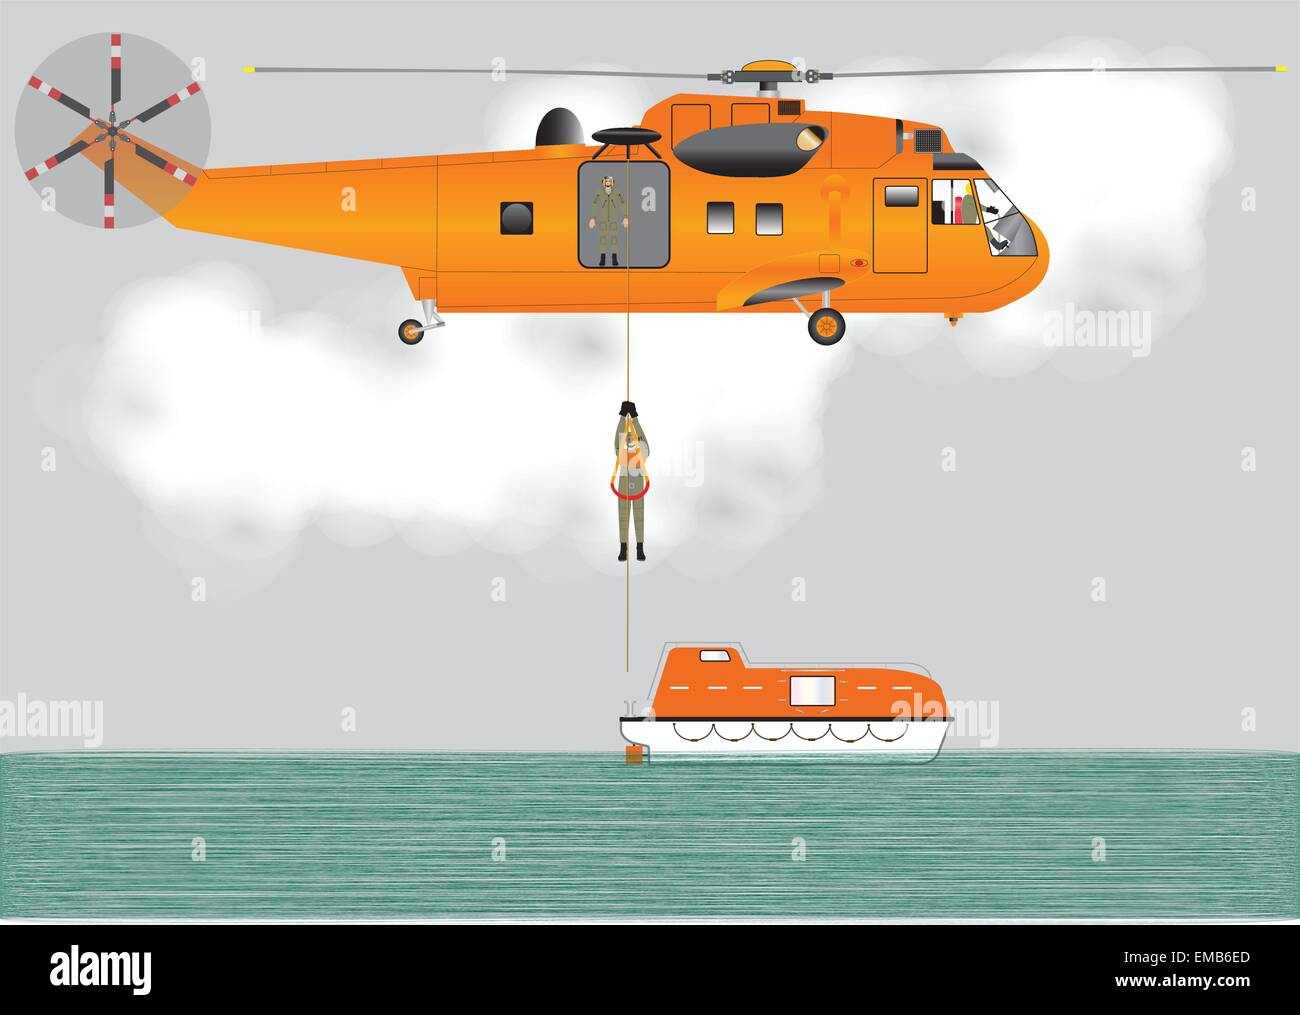 A vector illustration of An Orange Search and Rescue Helicopter hovering whilst lowering a Crewman onto a lifeboat - Stock Vector